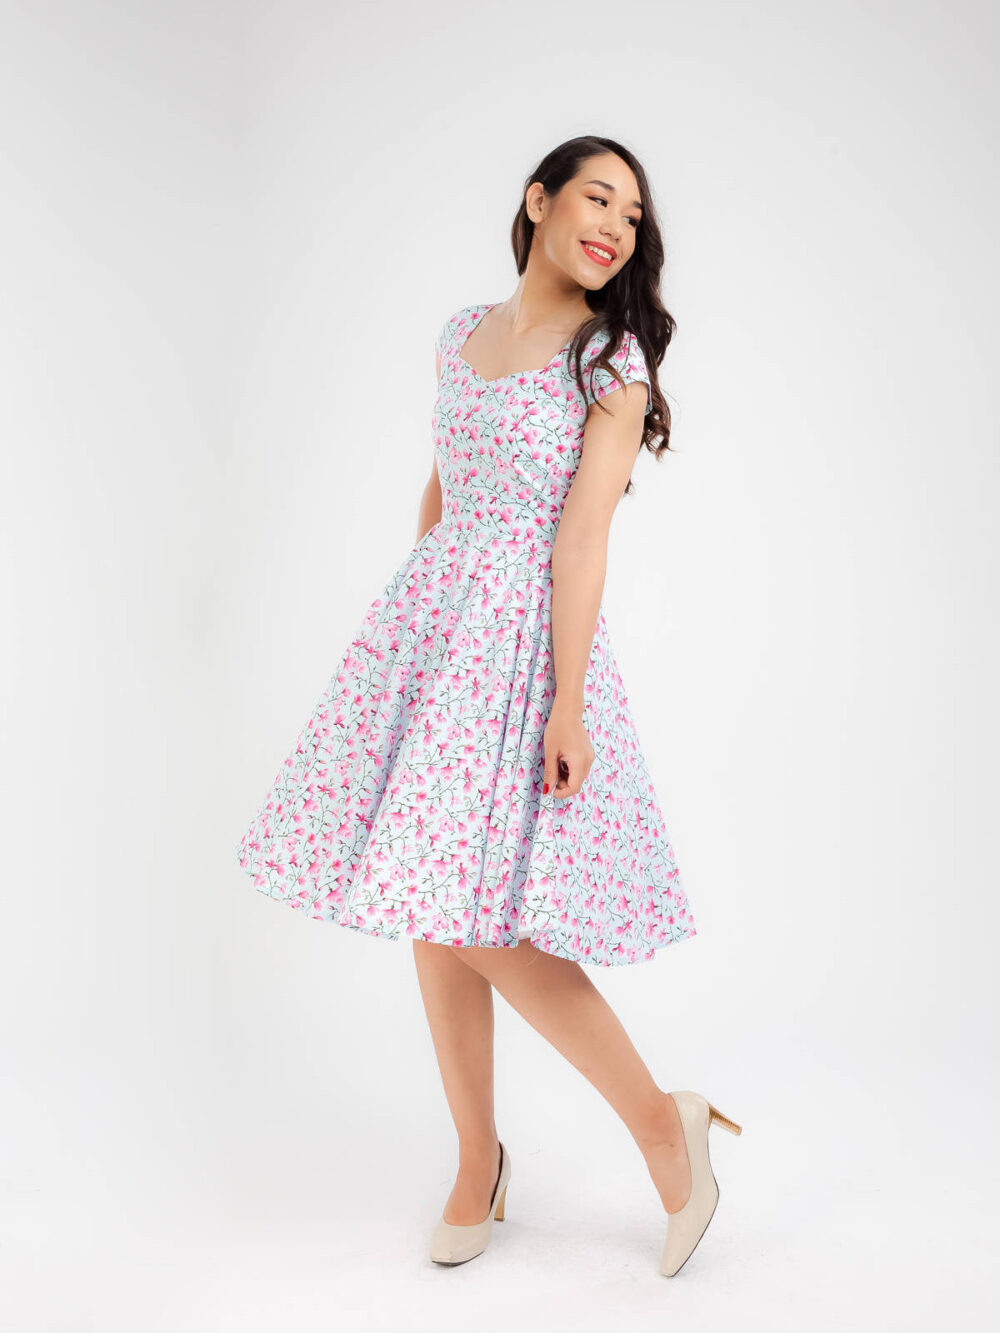 Magnolia Flower Dress 1950S Vintage Spring Floral Bridesmaid Women Summer Swing Prom Pin Up